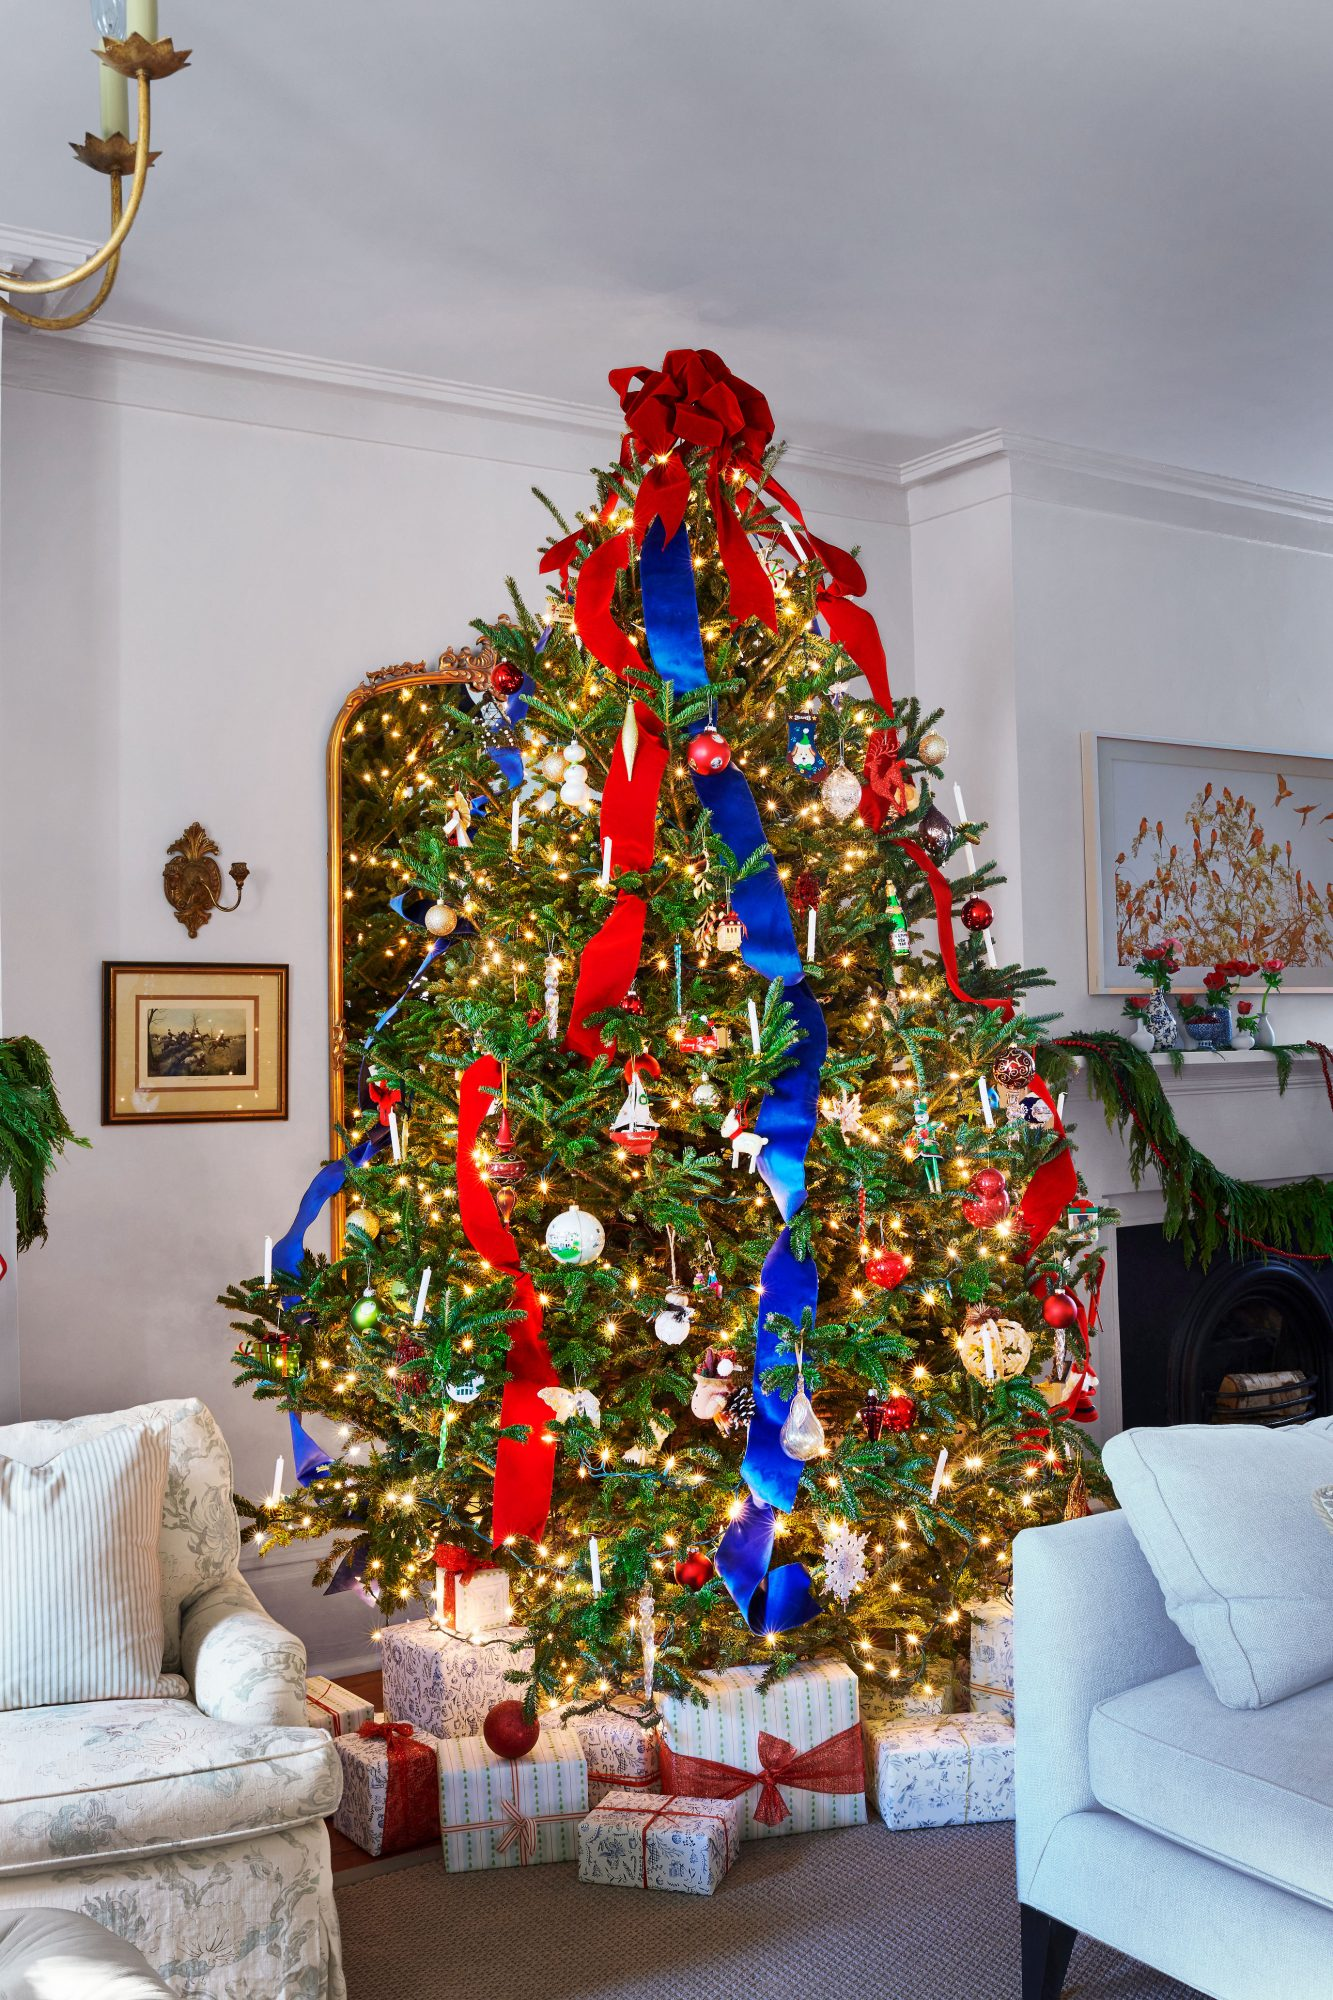 Christmas Tree with Red and Blue Ribbons